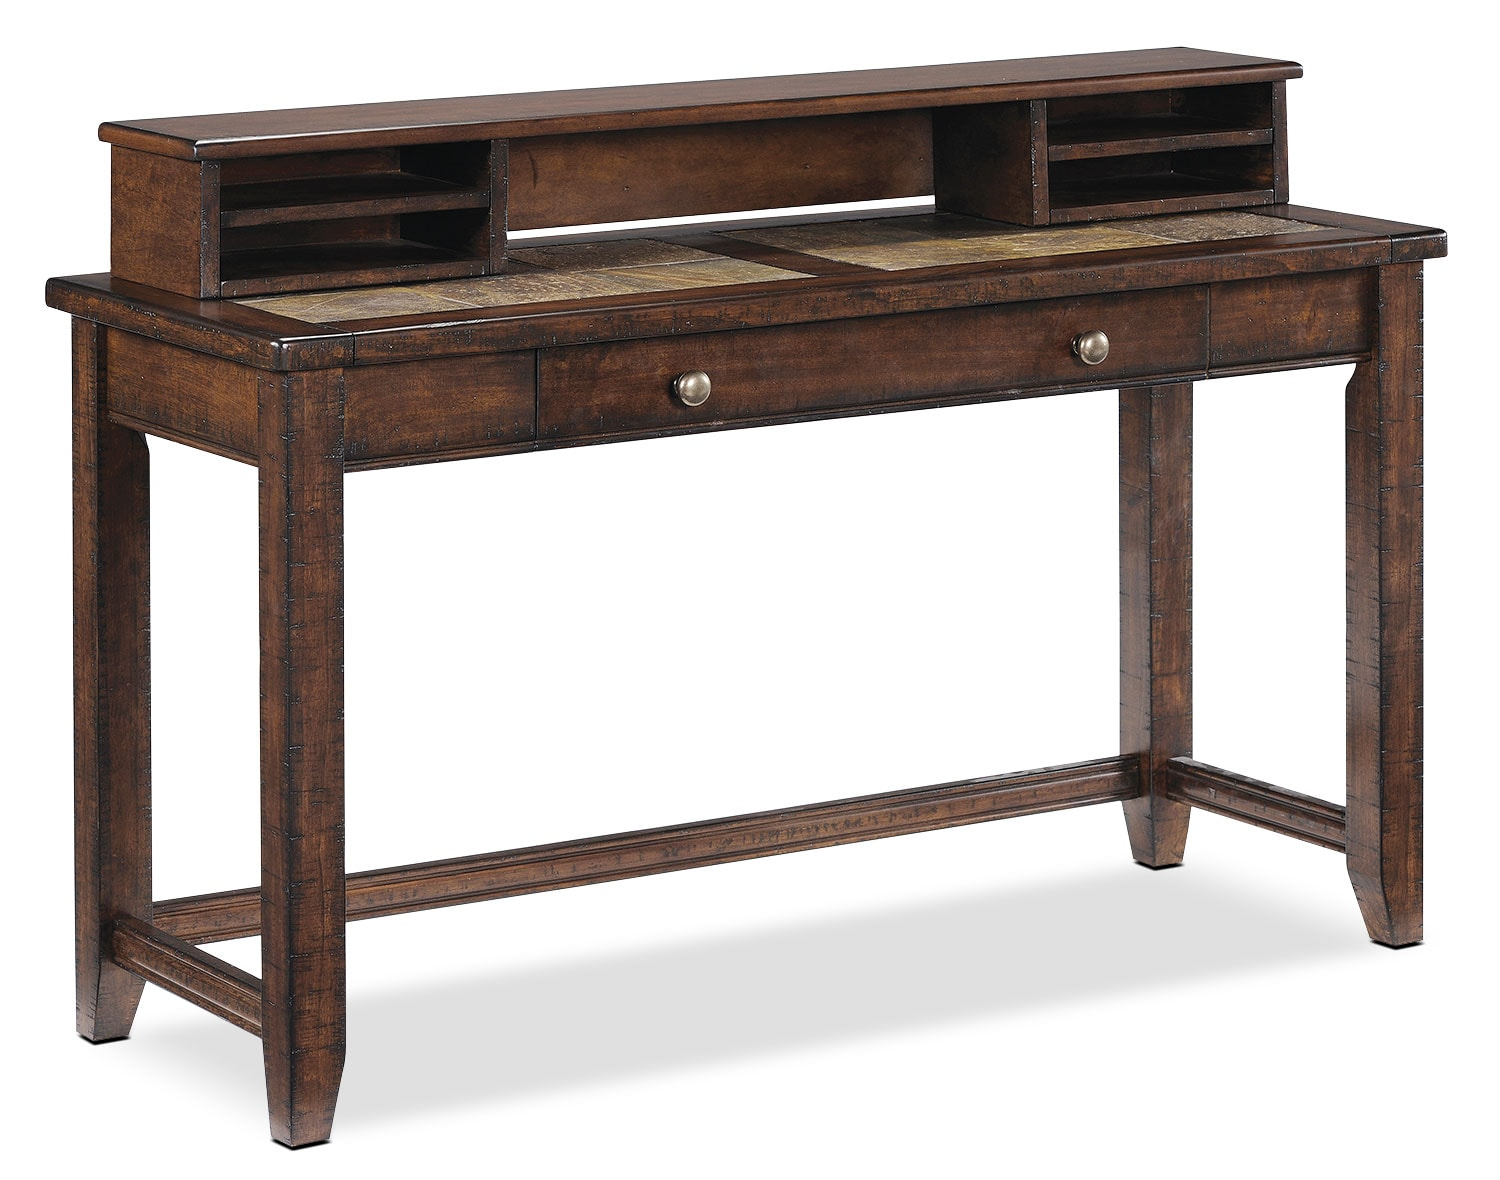 Online Only - Allister Sofa Desk Table - Cinnamon